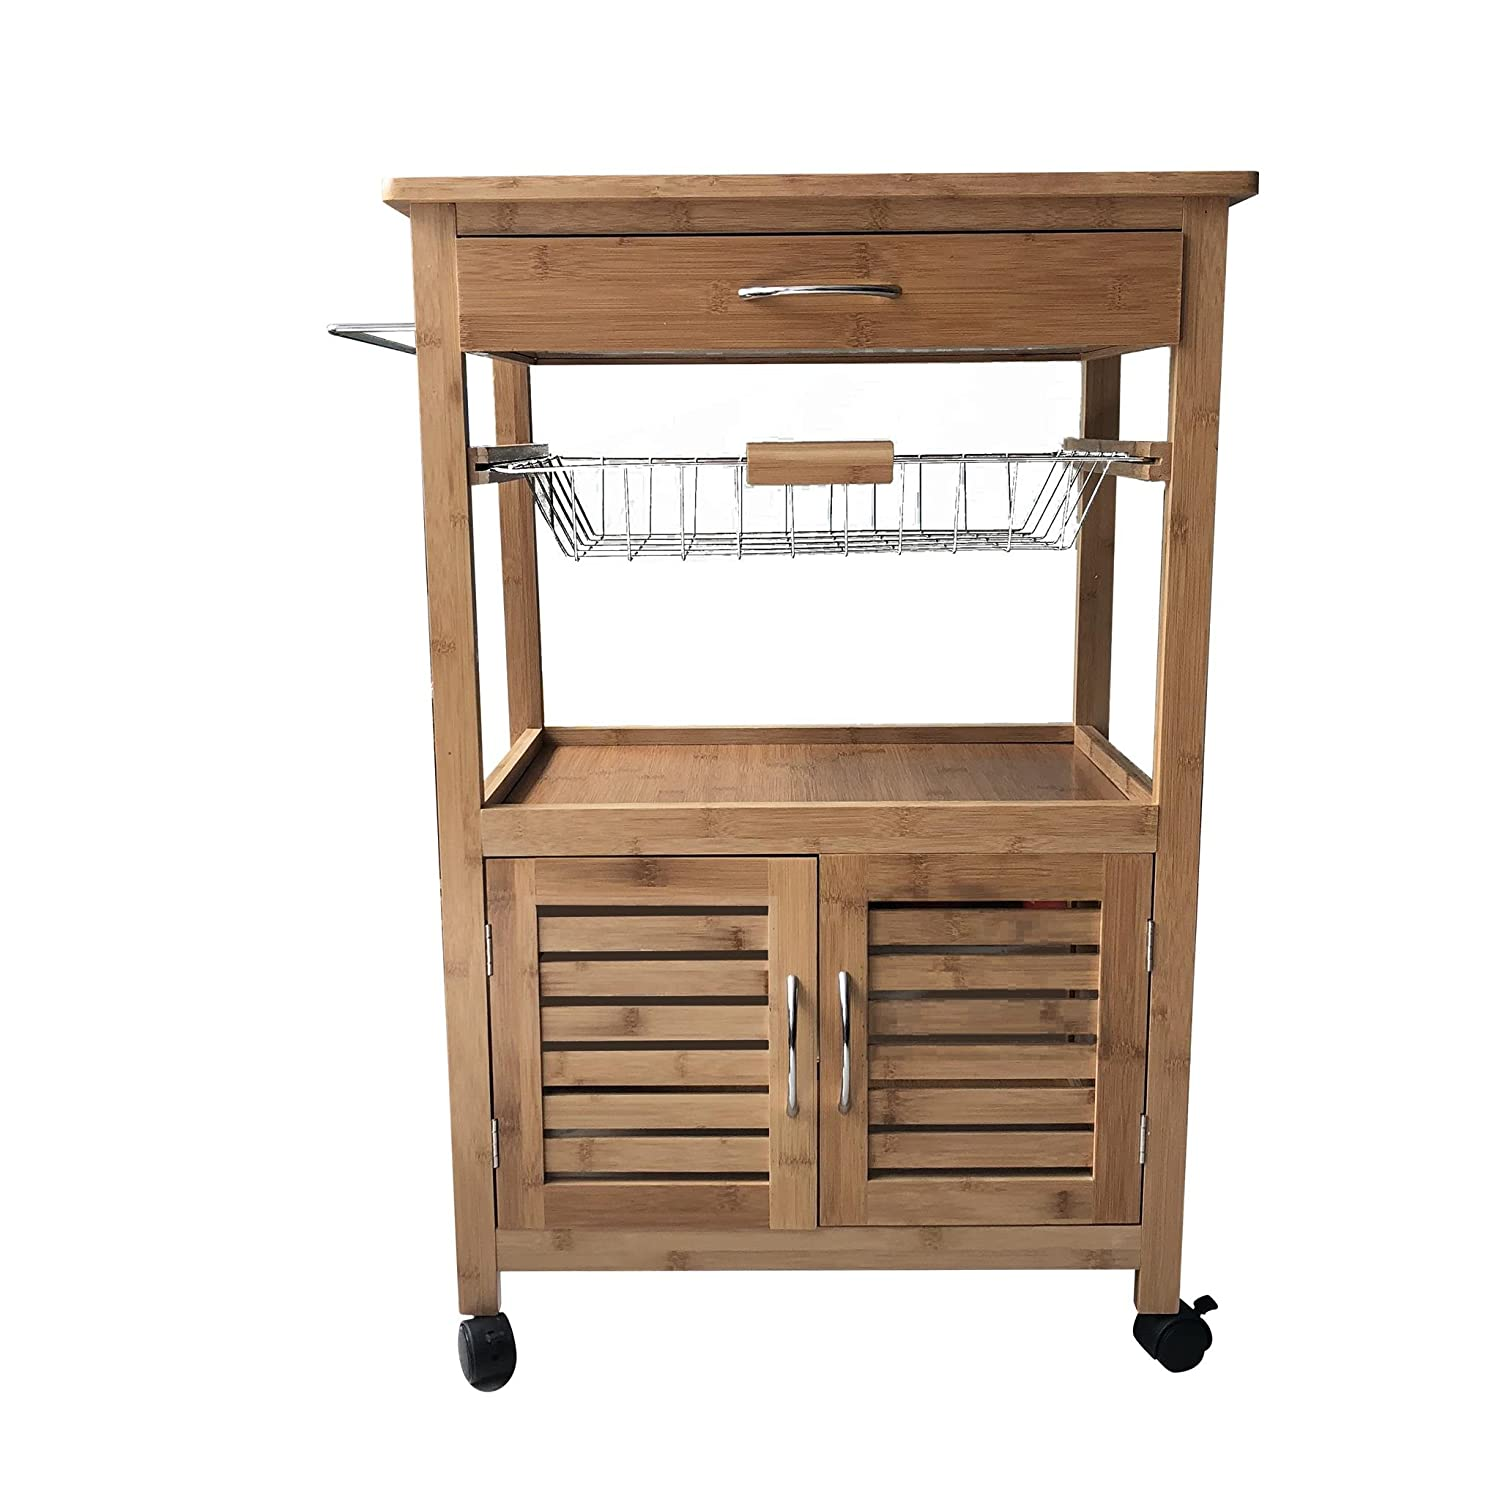 G4RCE 3 Tier Portable Natural Bamboo Wood Kitchen Trolley Basket Cabinet Storage Cart Generic